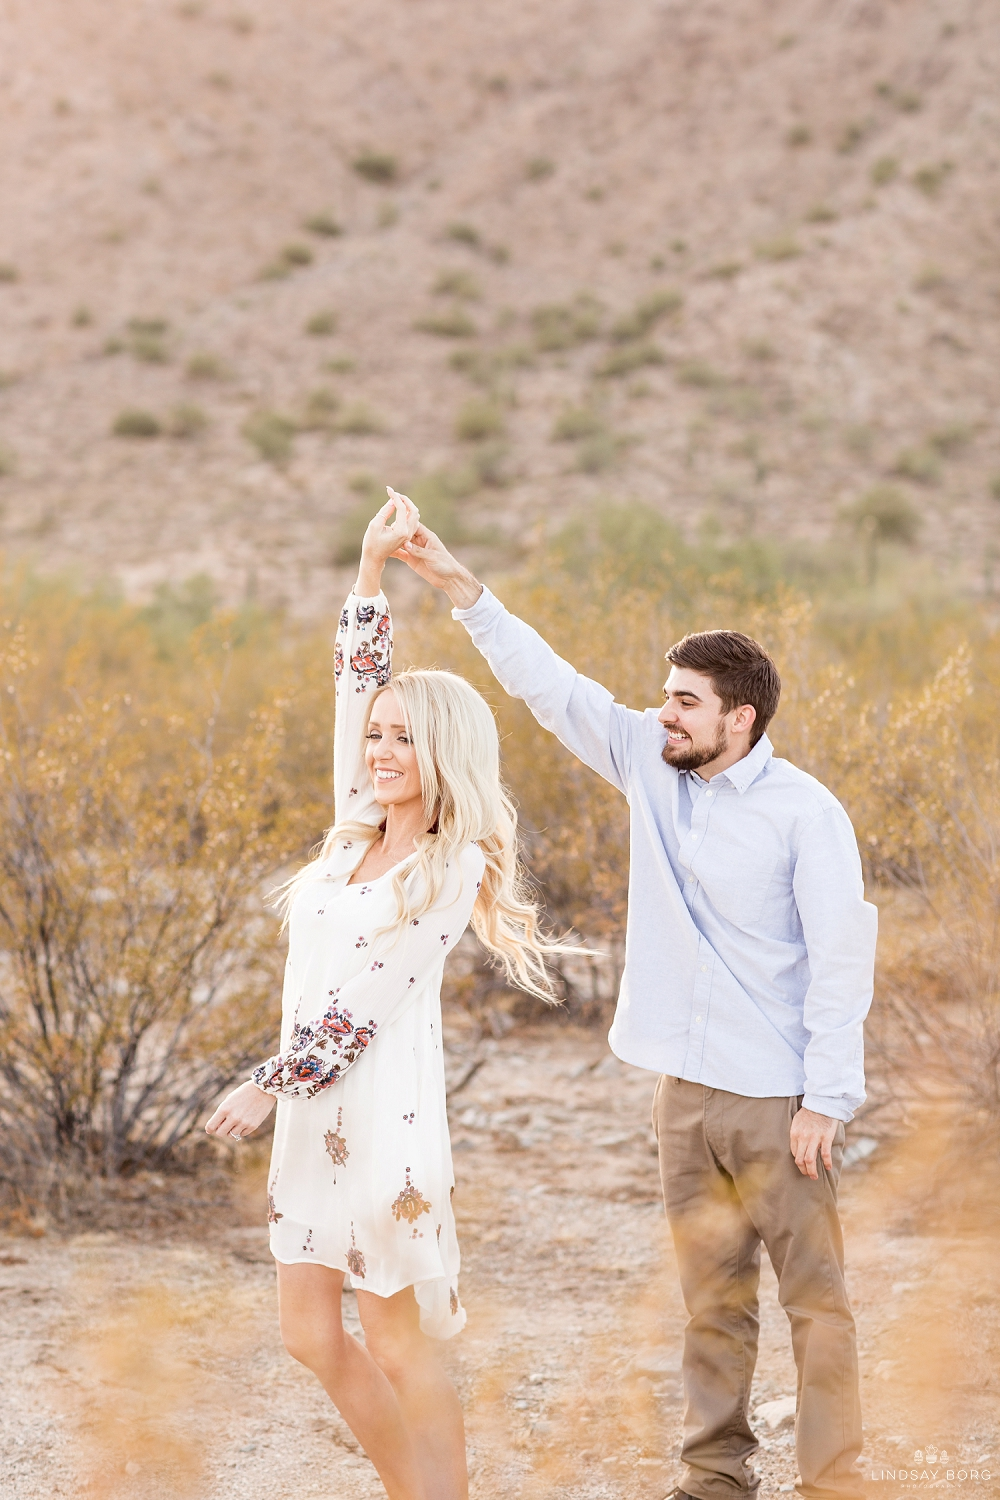 Lindsay-Borg-Photography-arizona-senior-wedding-portrait-photographer-az_2924.jpg